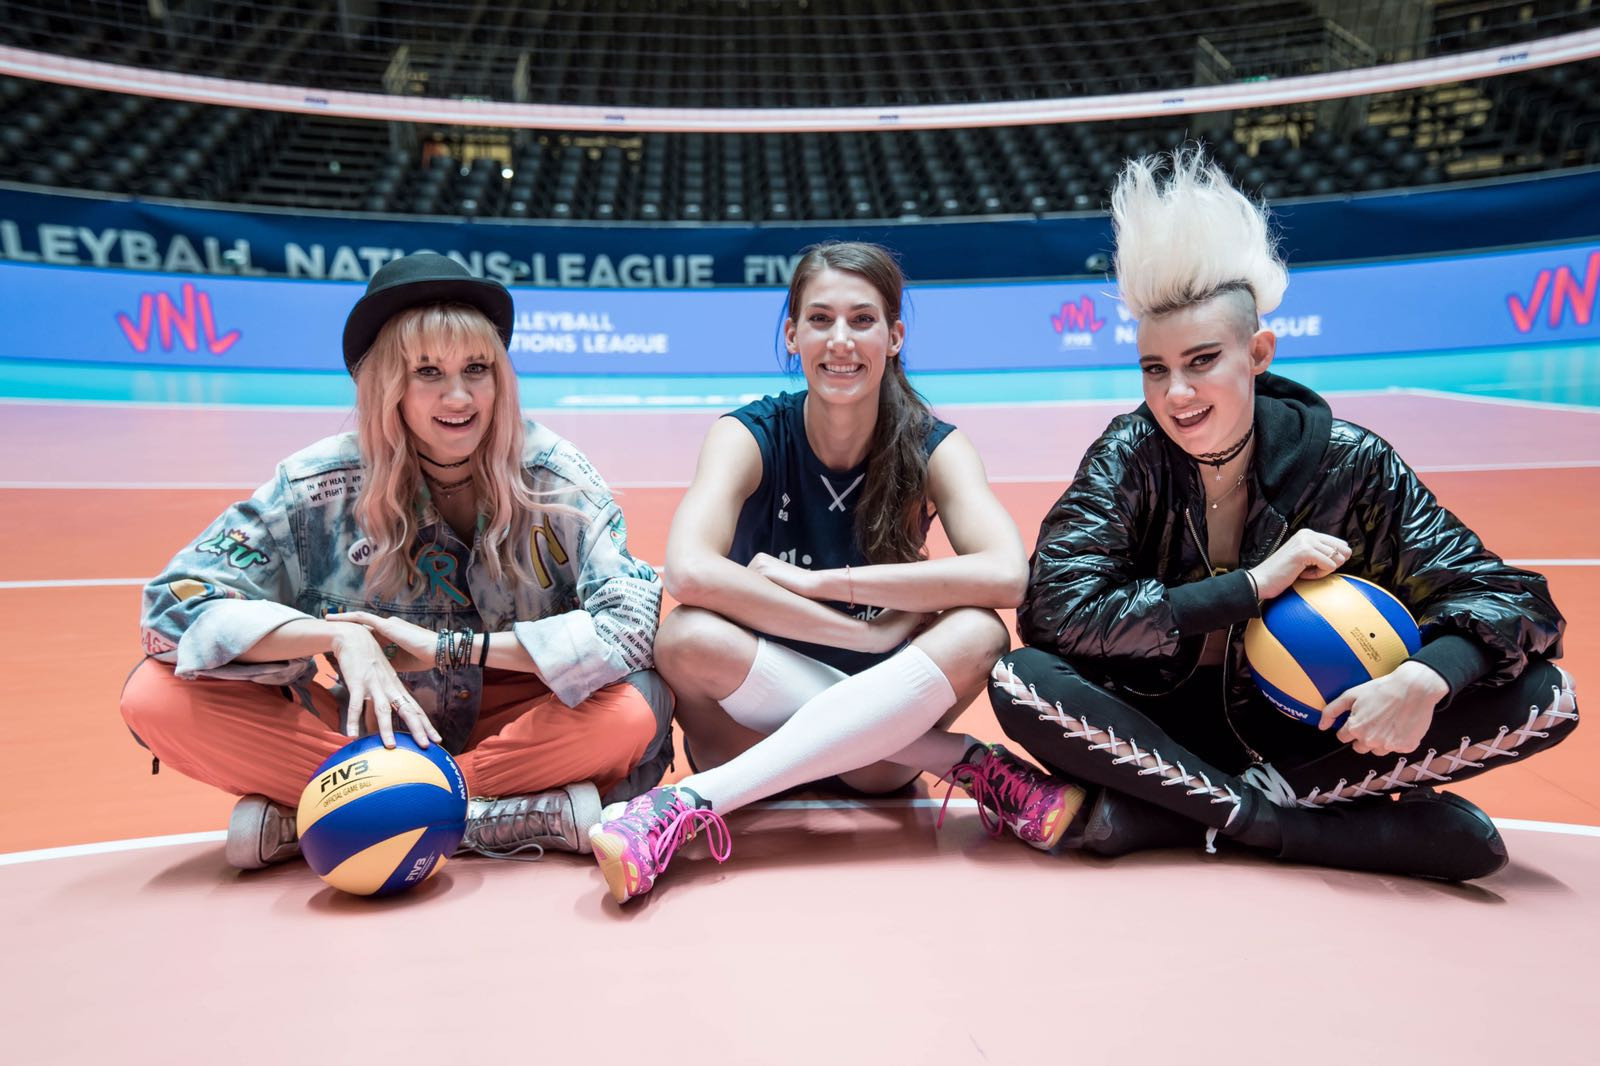 NERVO spent time with Robin de Kruijf and The Netherlands team before the Women's Volleyball Nations League pool matches in Apeldoorn ©FIVB